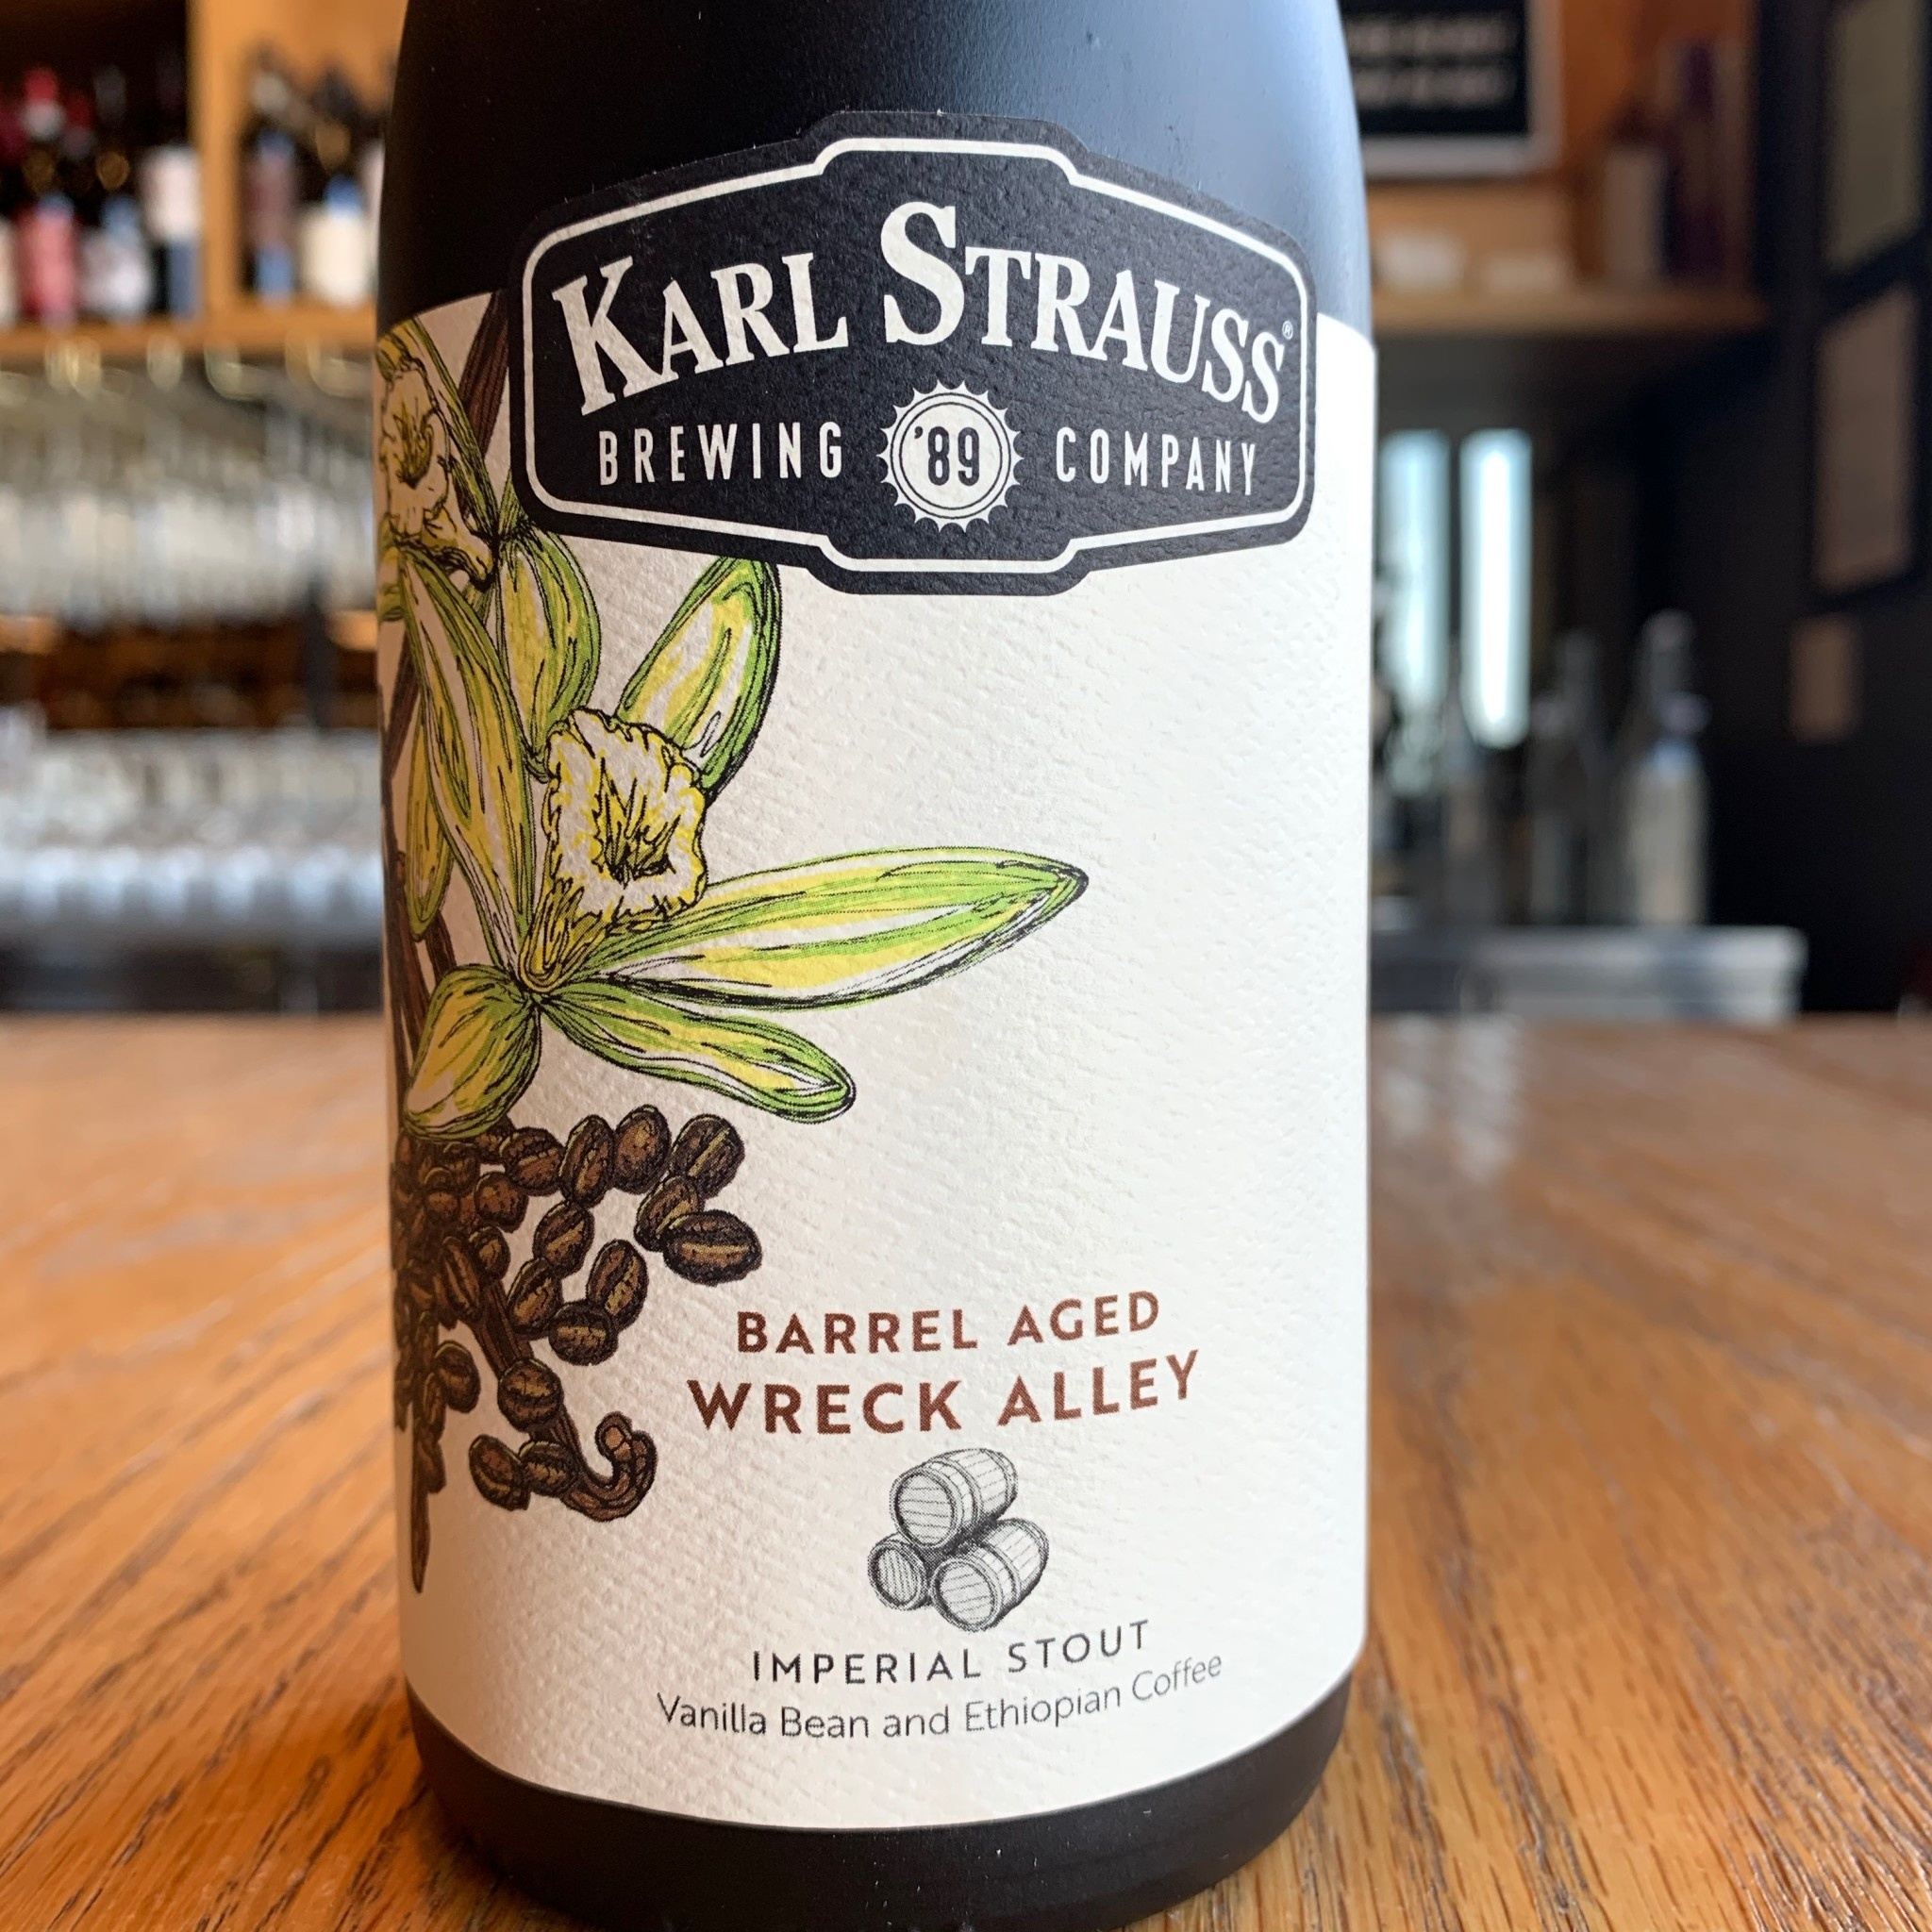 Karl Strauss Karl Strauss Brewing Co. Barrel Aged Wreck Alley Stout 500ml